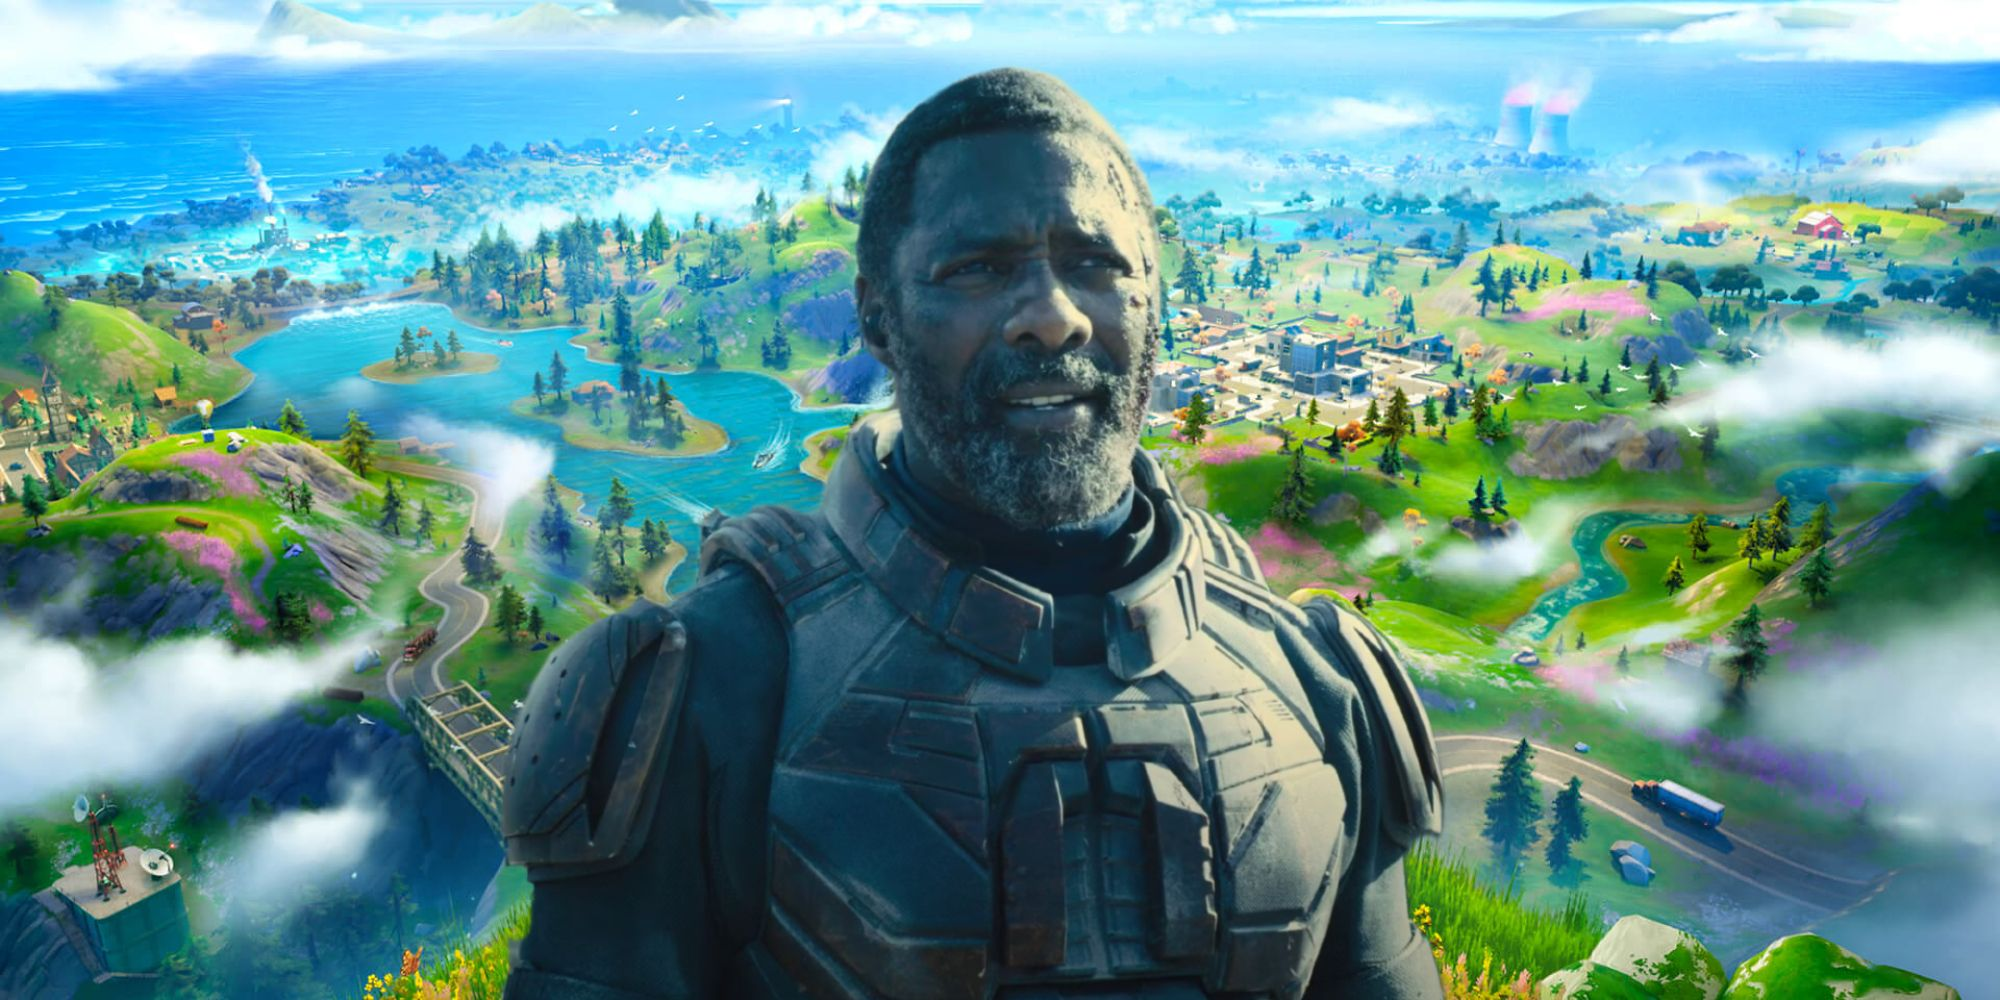 Suicide Squad's Bloodsport Is Coming To Fortnite